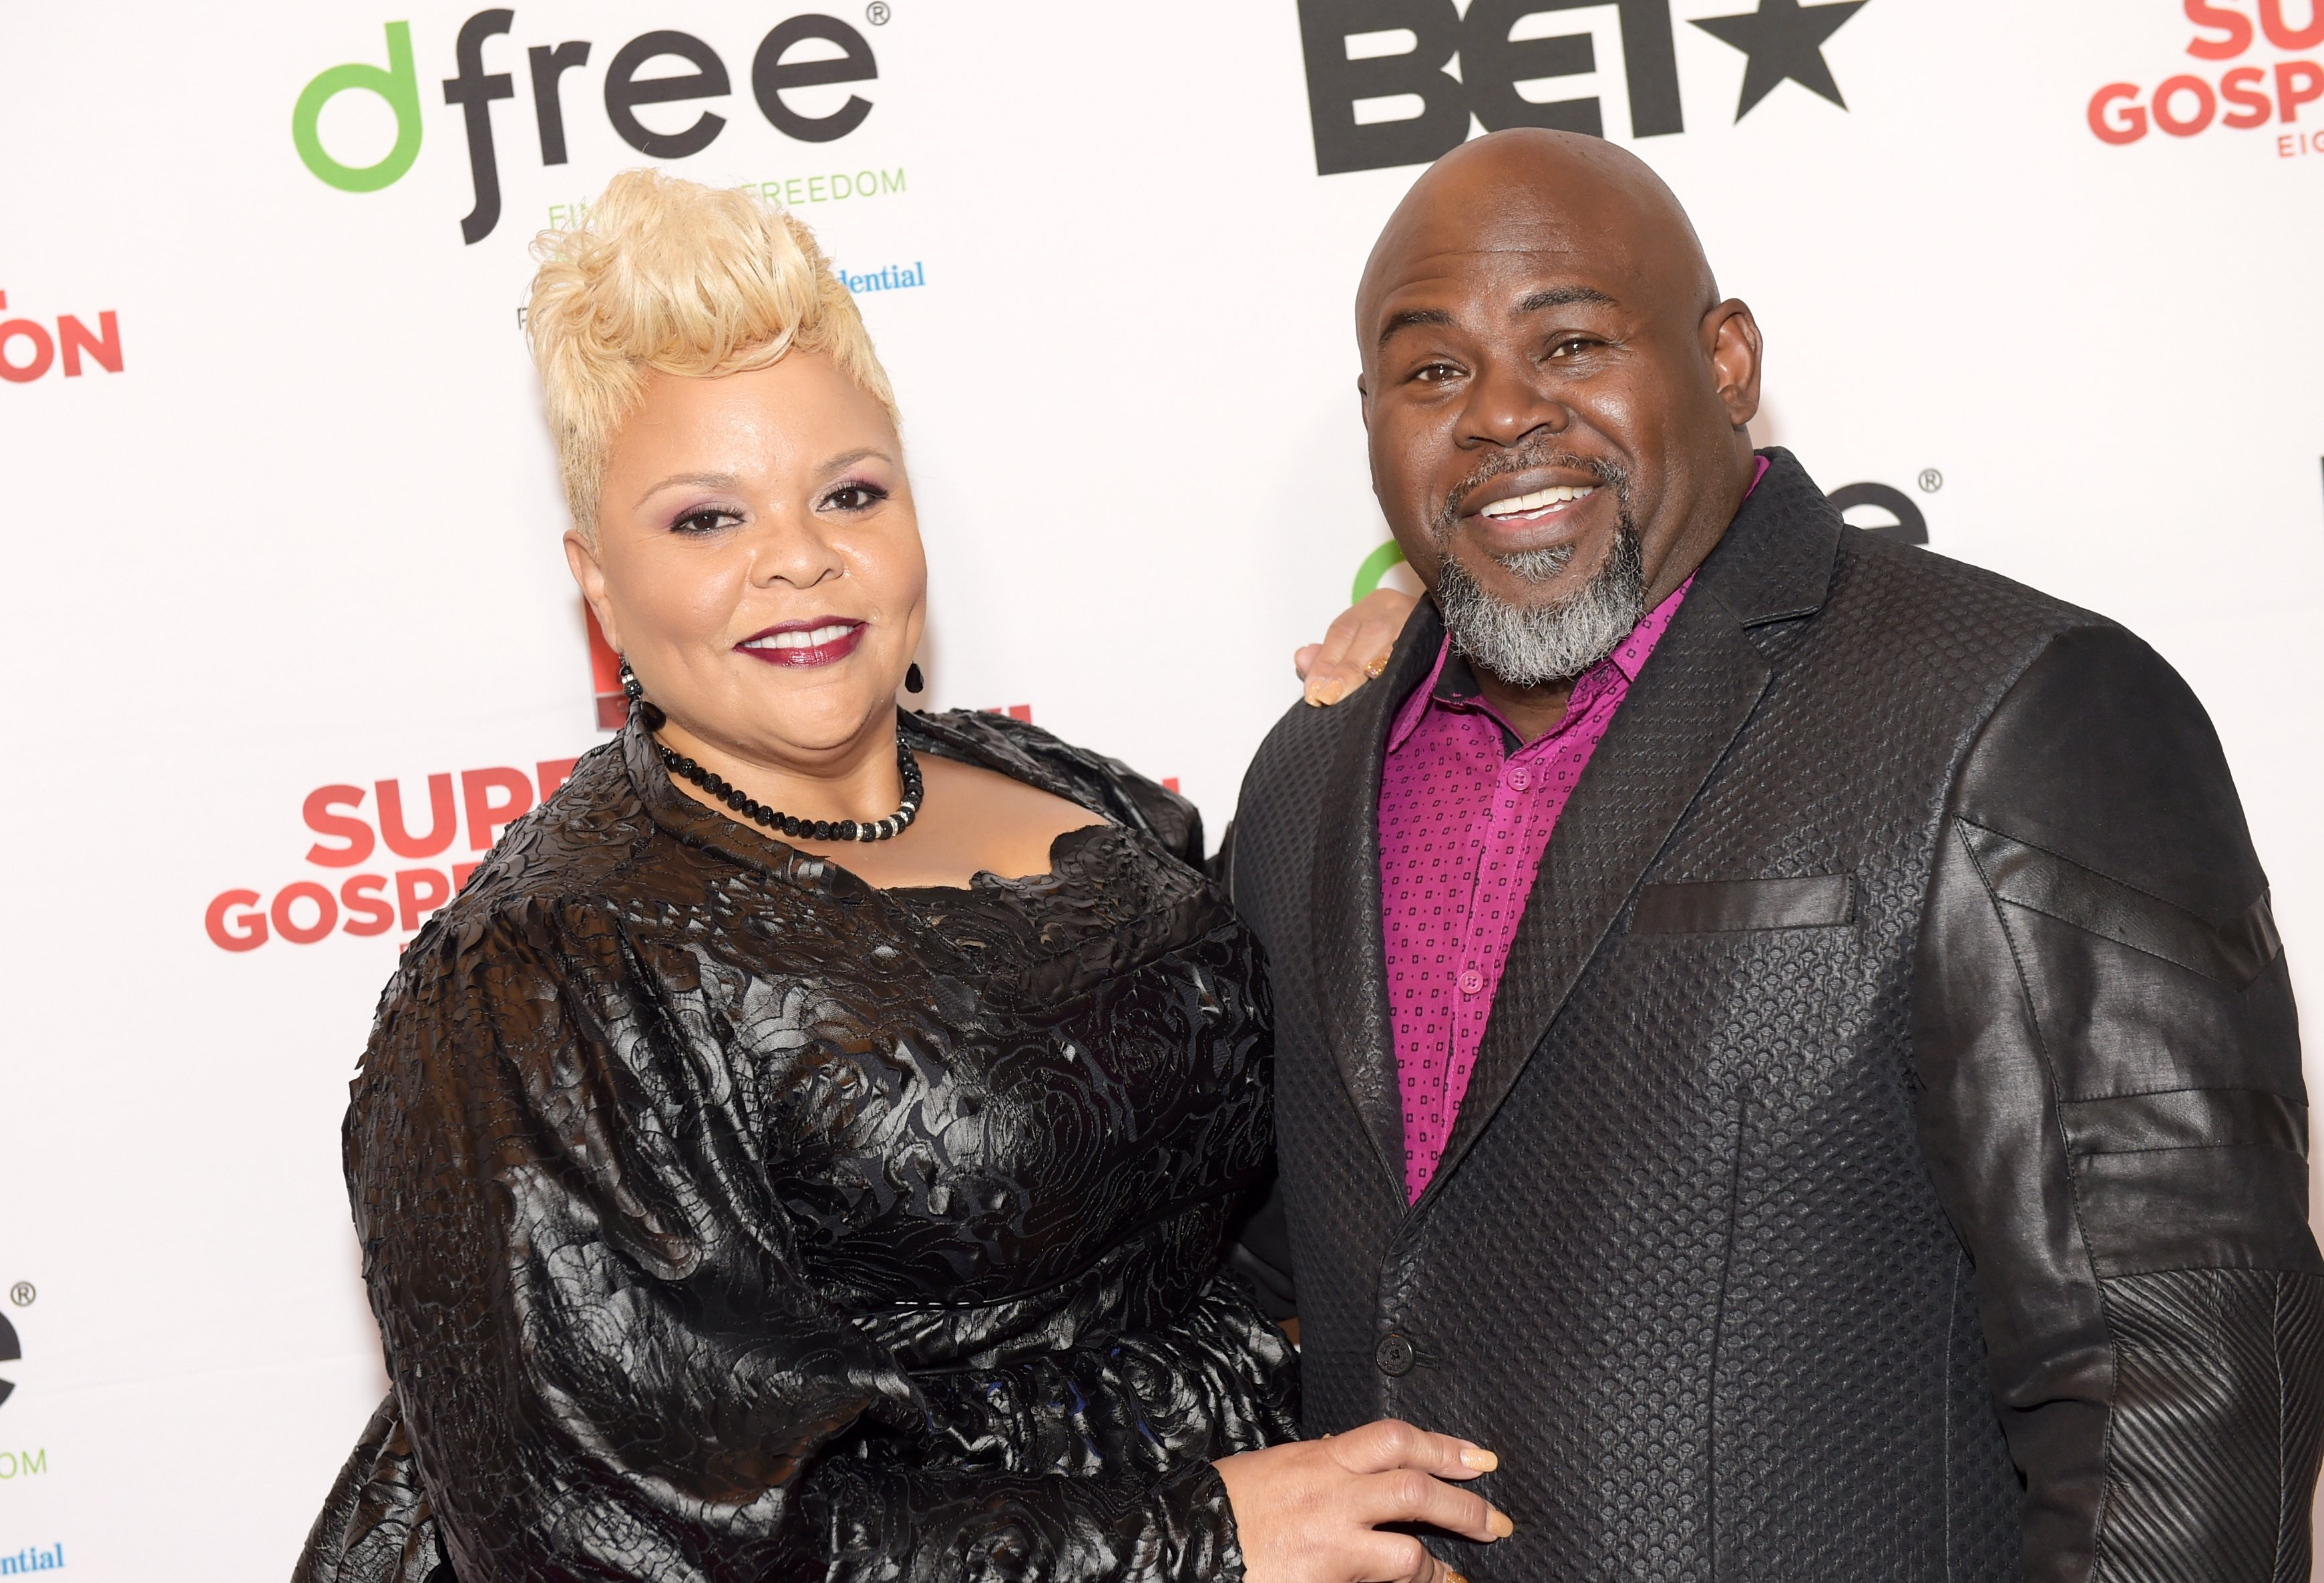 Tamela Mann and David Mann at  BET's Super Bowl Gospel Celebration in February 2017. | Photo: Getty Images